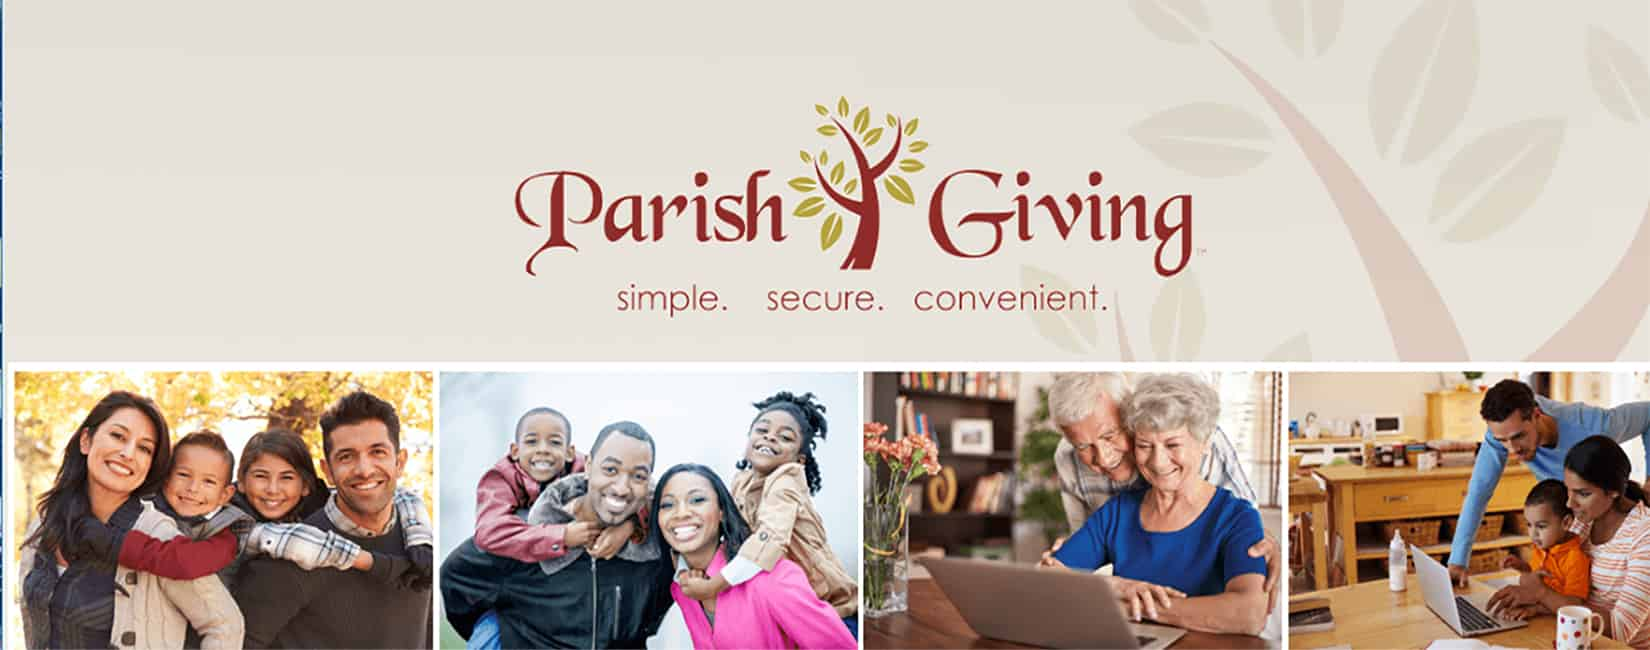 Online Giving through Parish Giving - All Saints Catholic Church